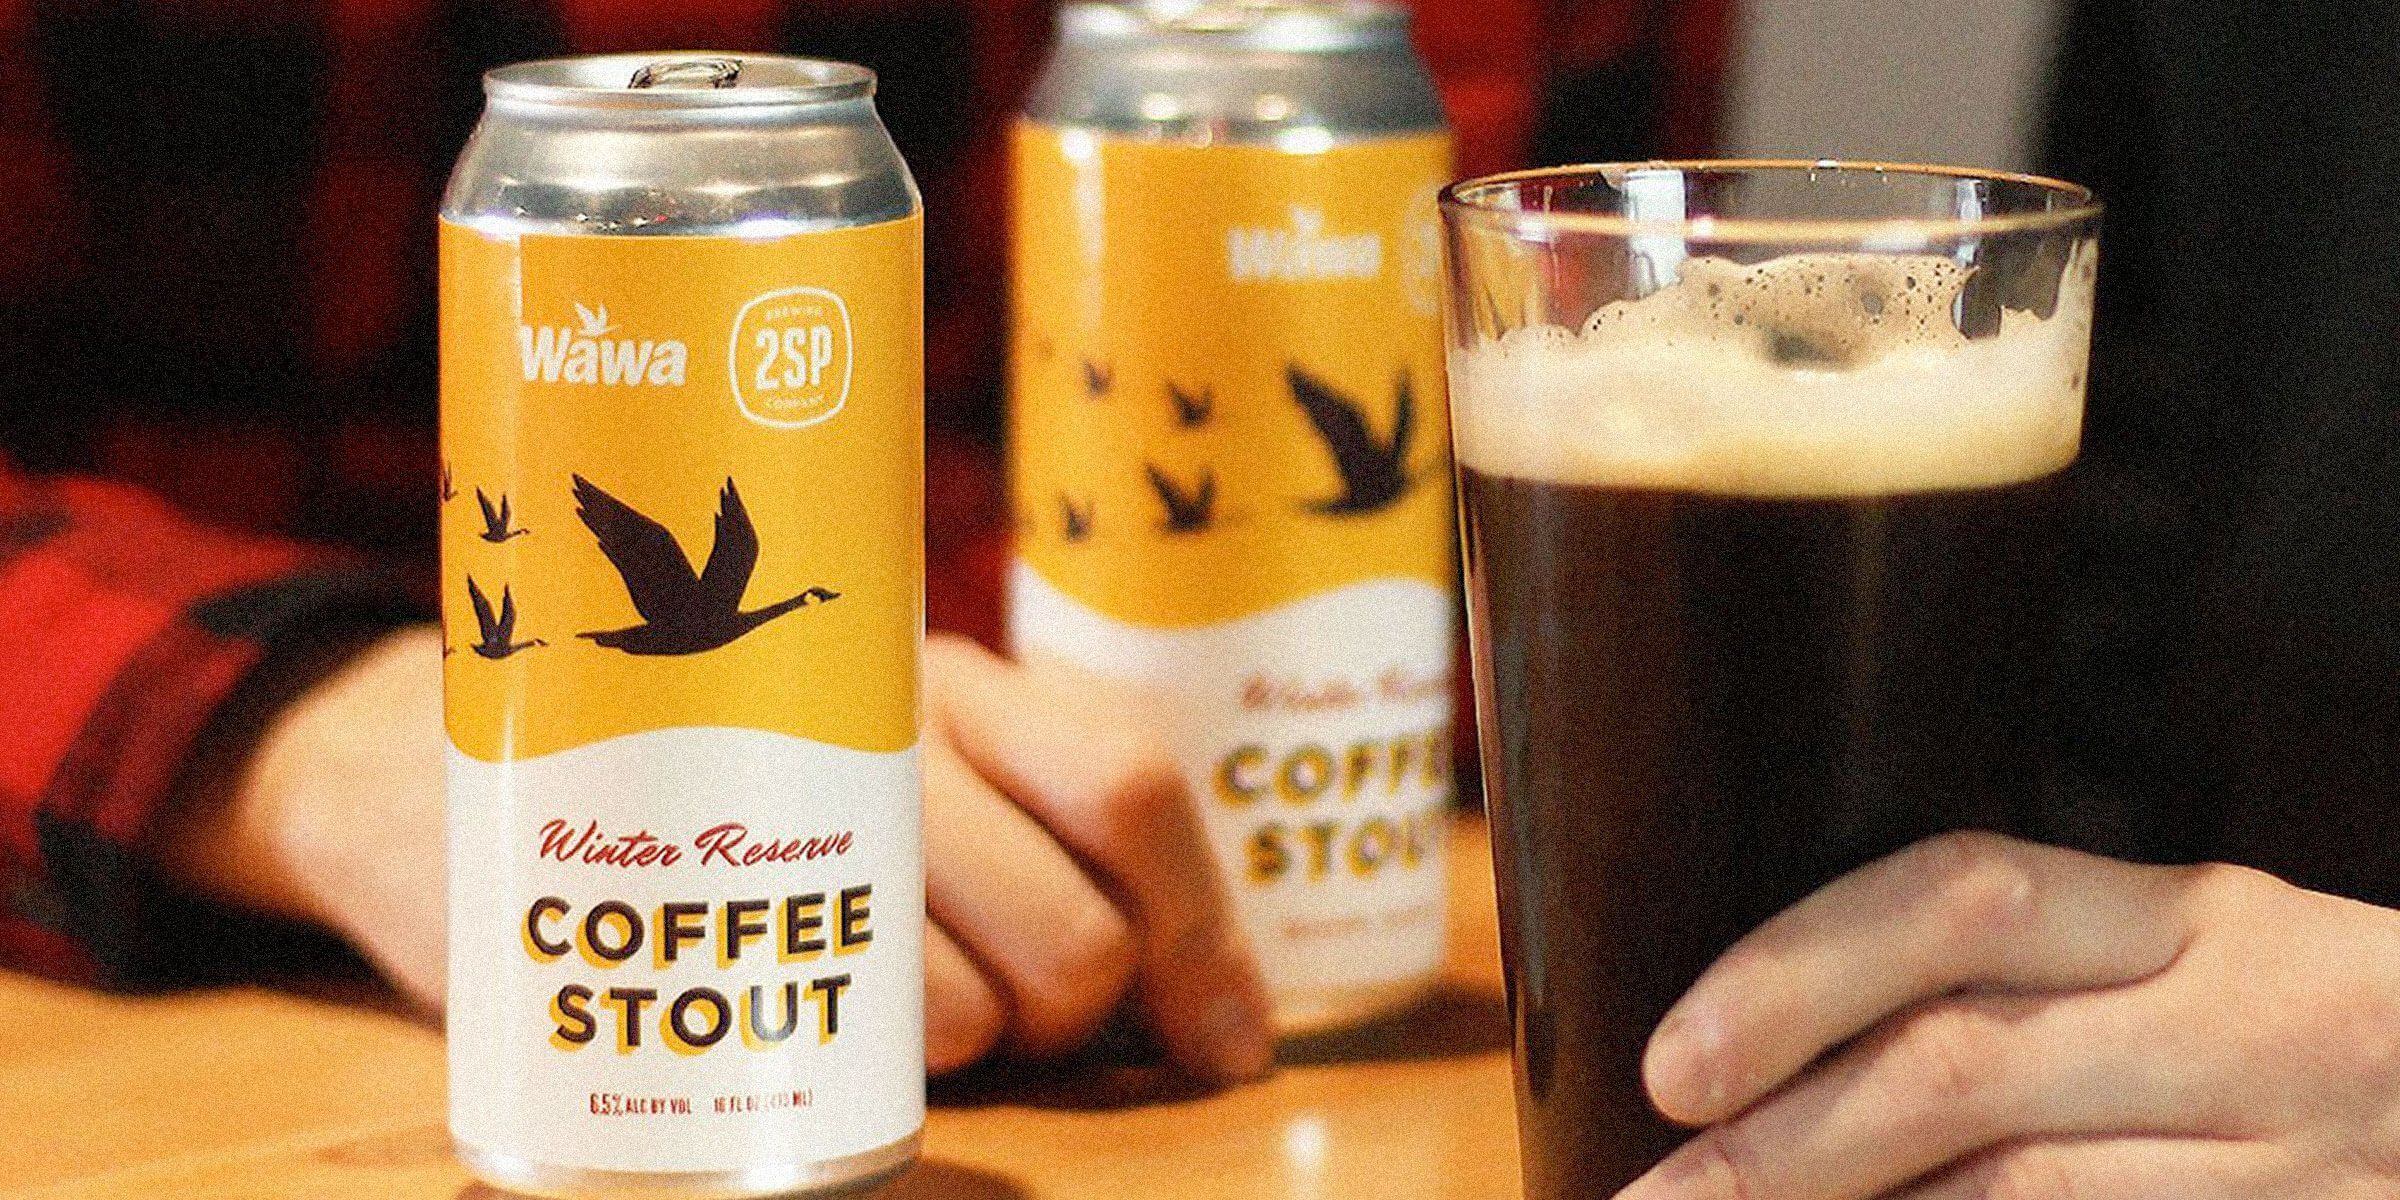 Wawa, in partnership with 2SP Brewing, announced the return of 2018's collaboration, Winter Reserve Coffee Stout and three other holiday brews as well.